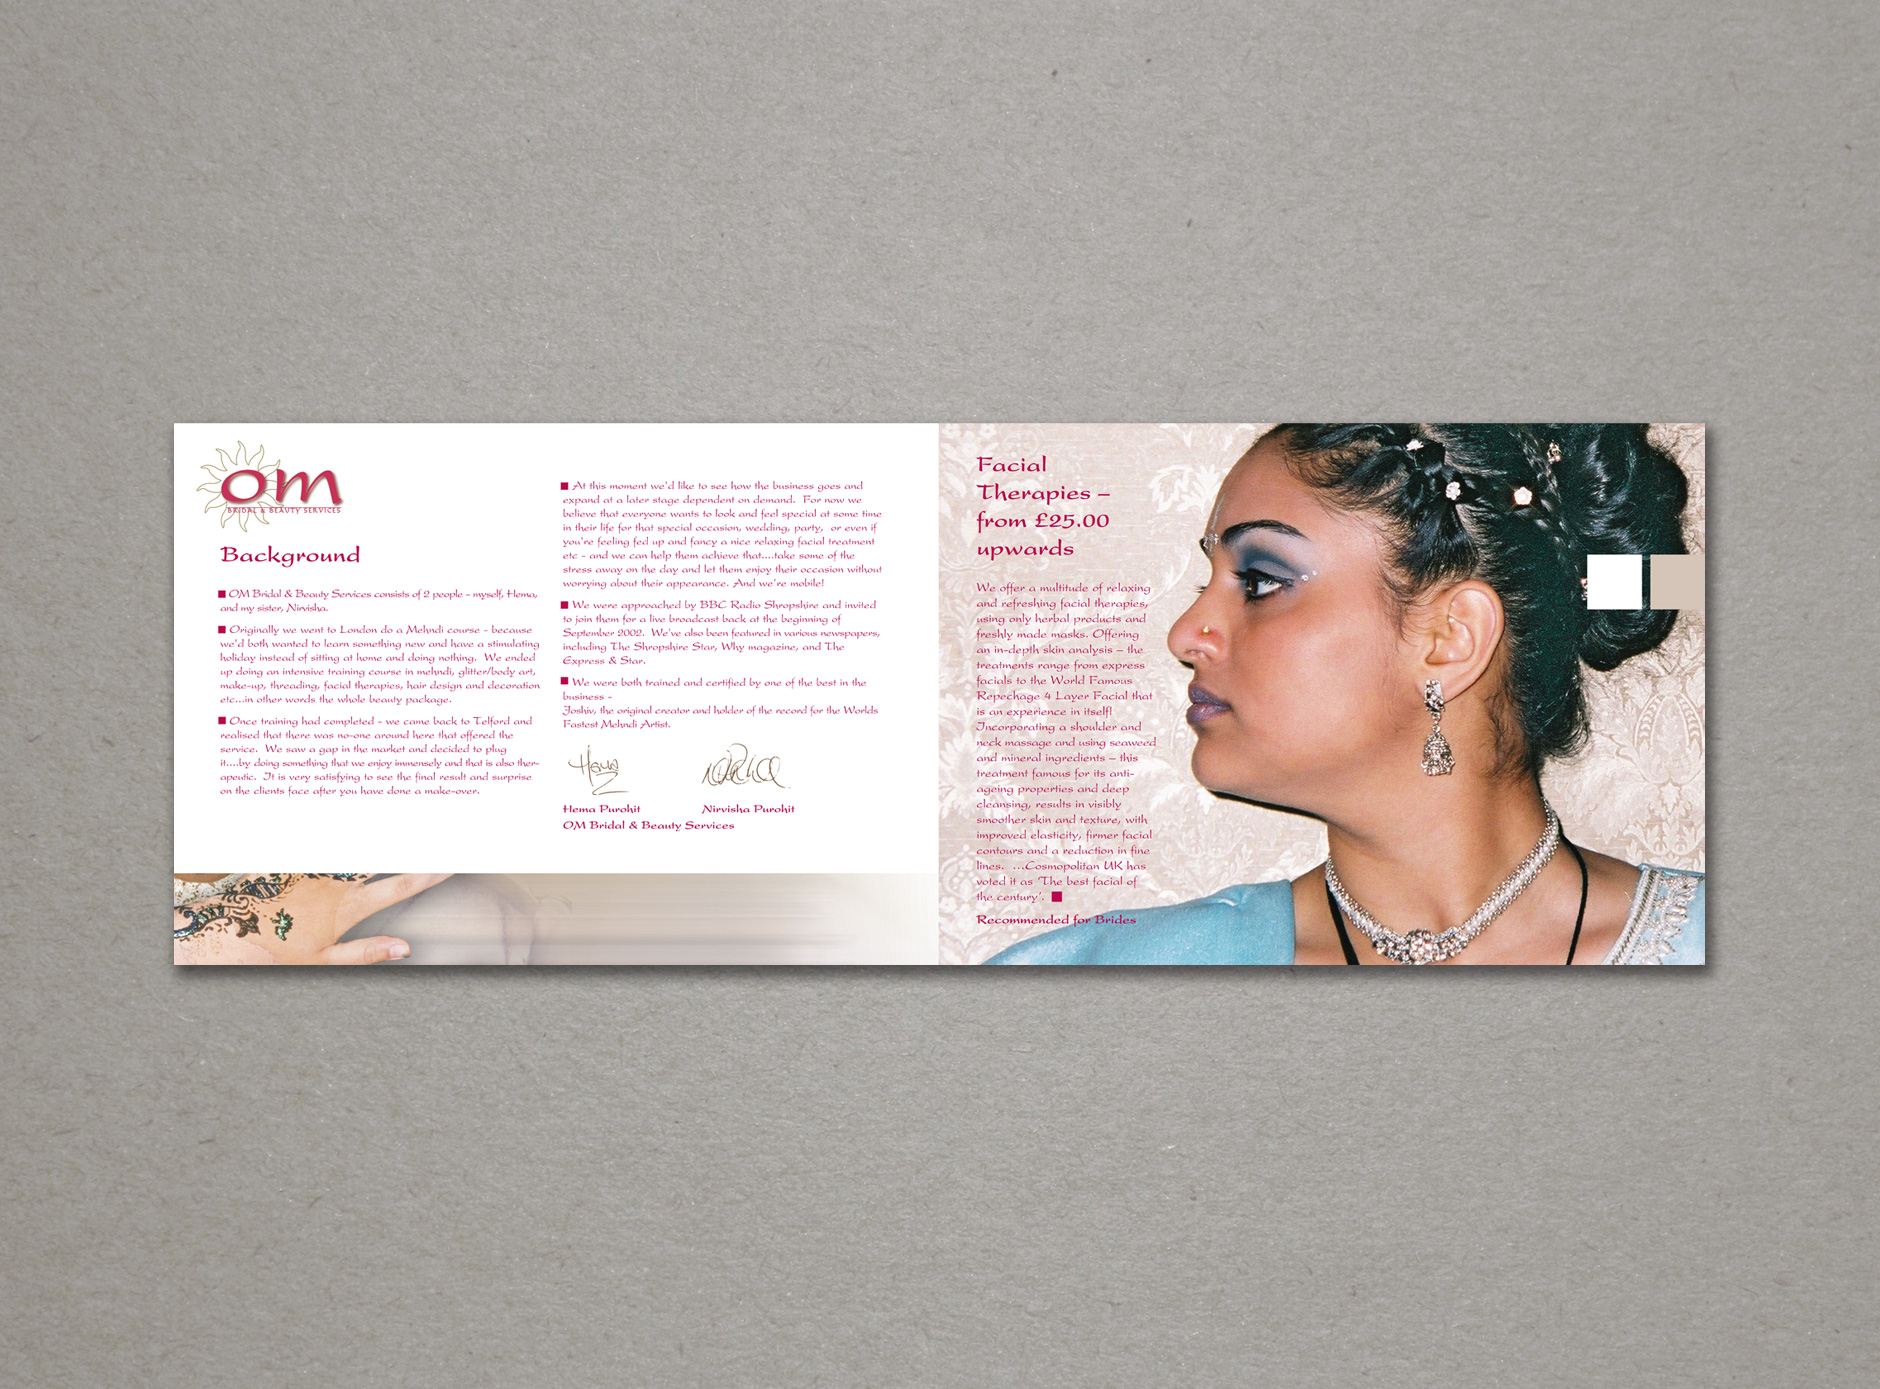 OM Bridal & Beauty design for print